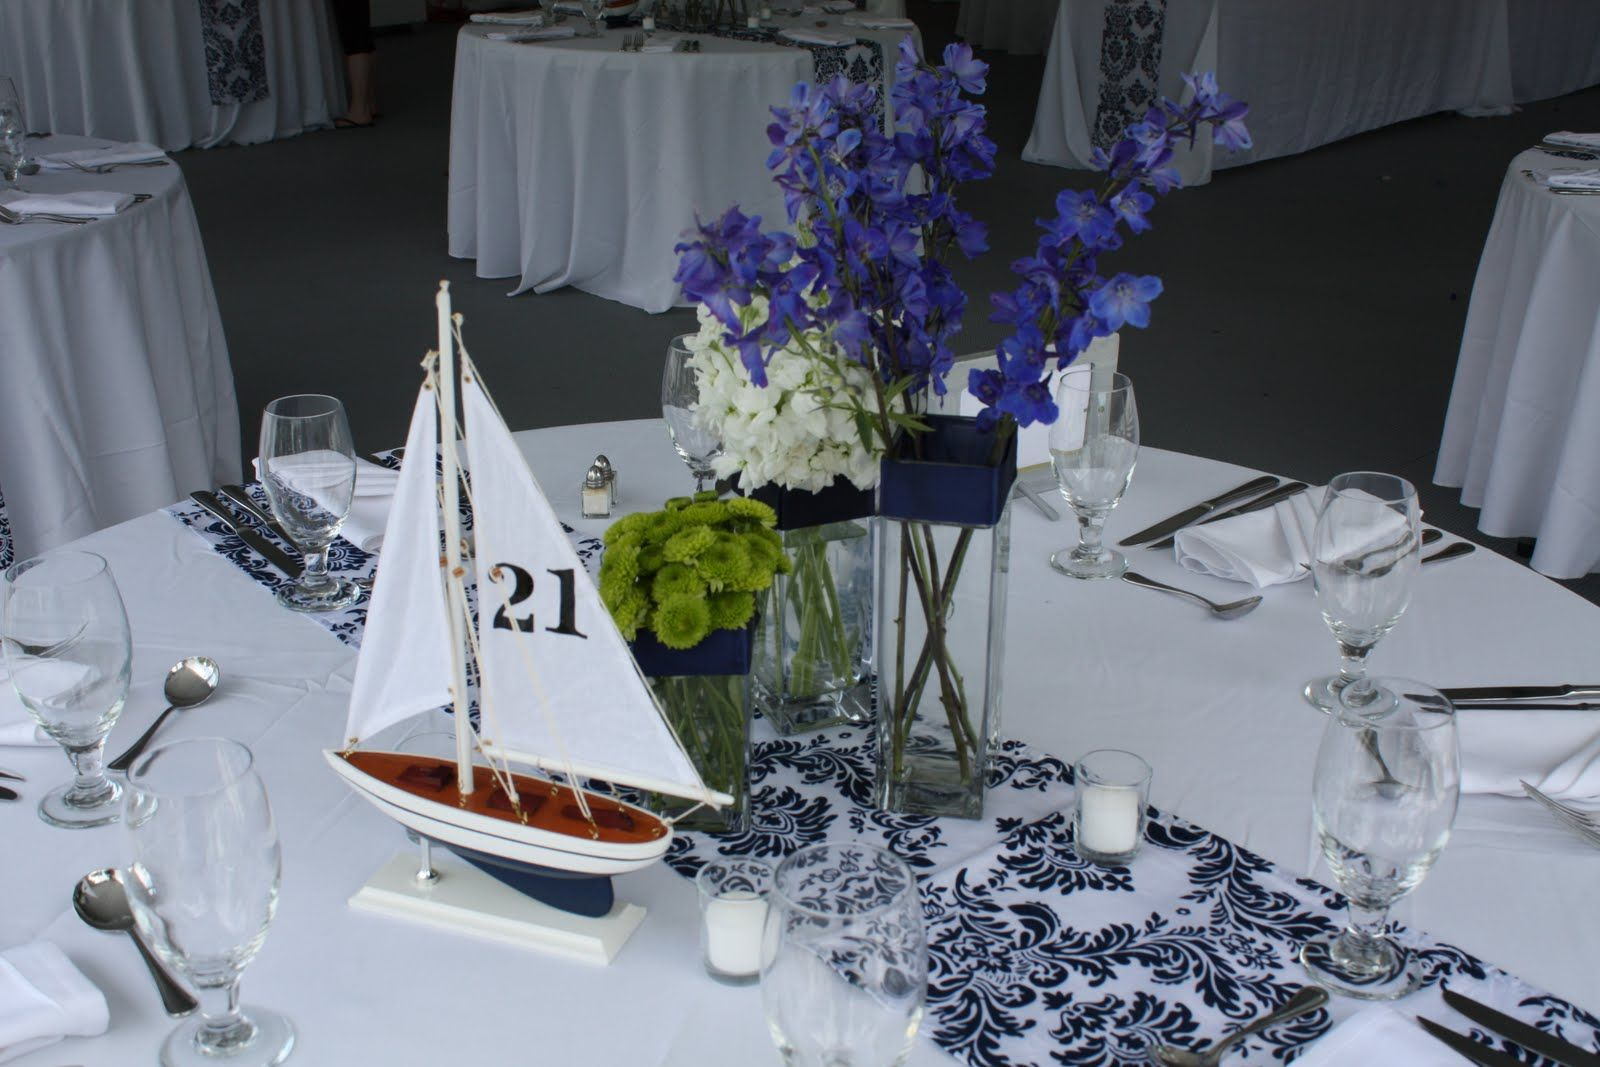 Pretty glass and flower center piece with small sailboat for table number